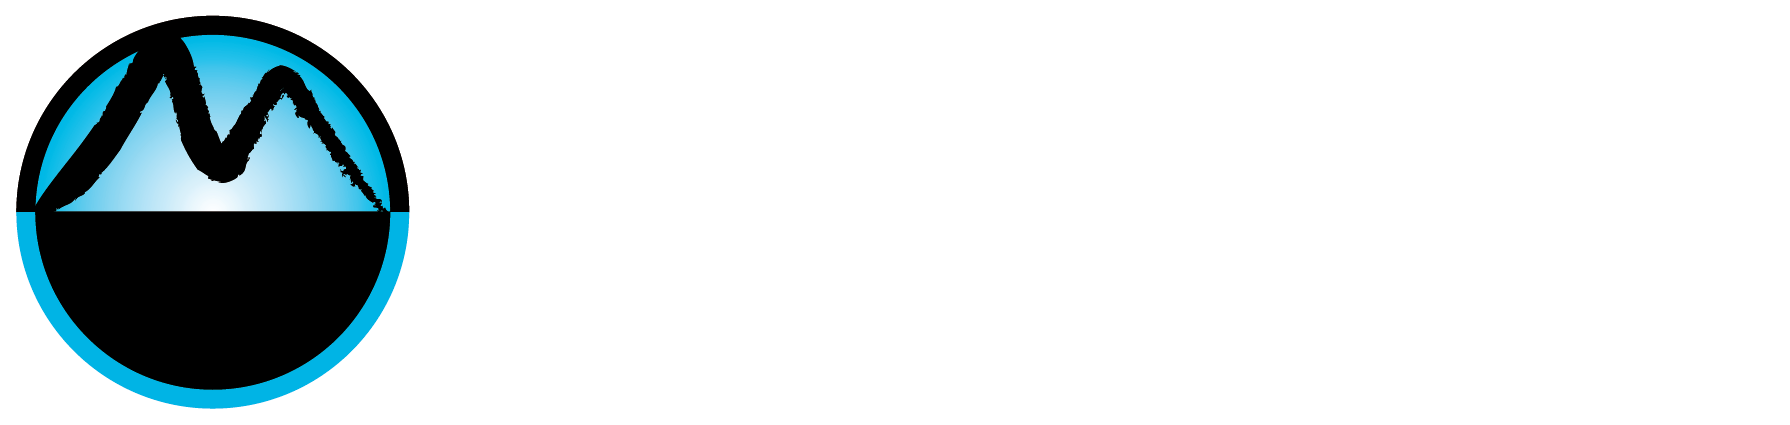 MountainThreads logo